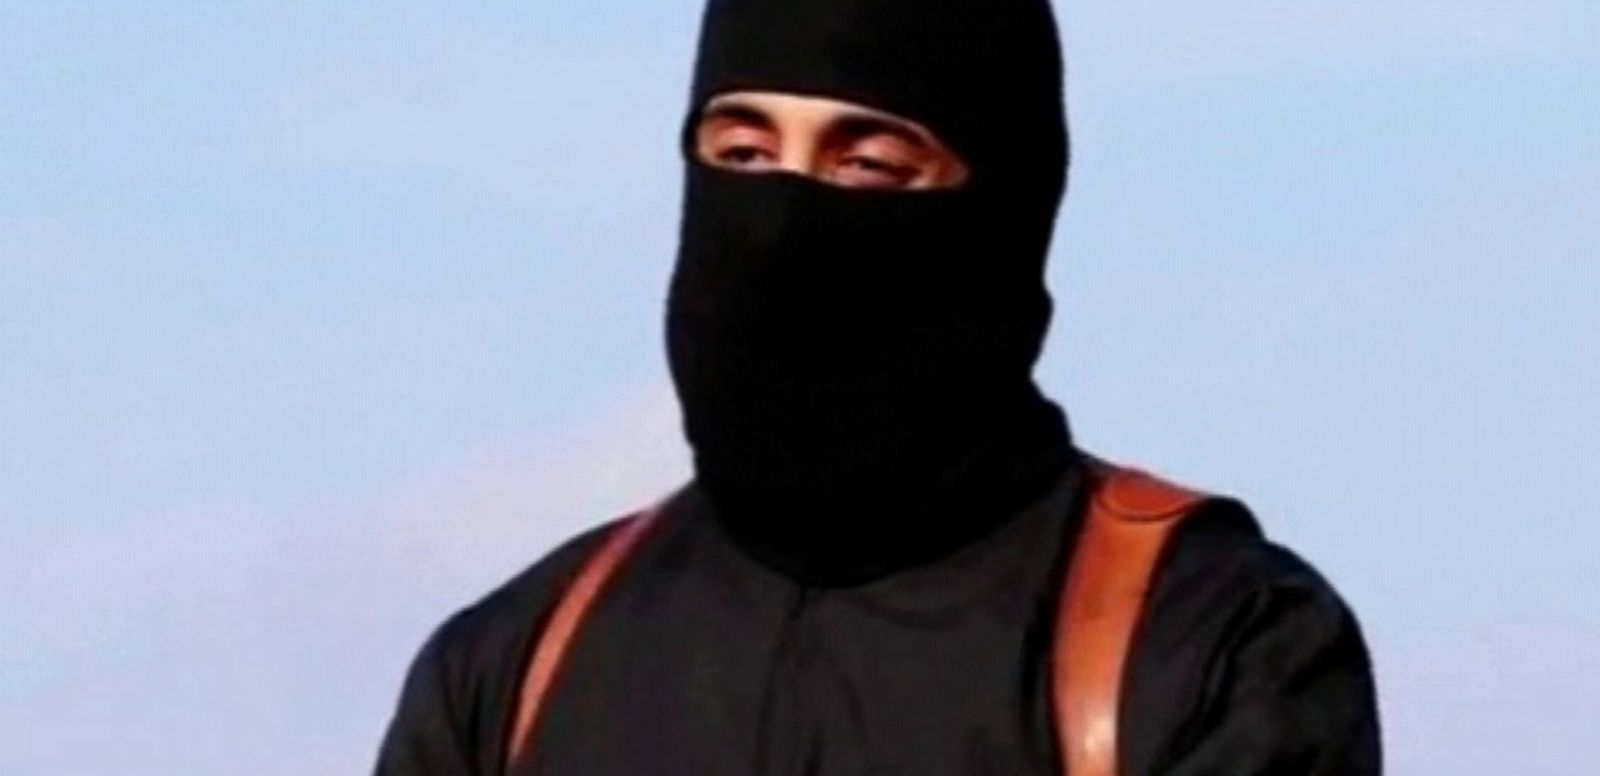 VIDEO: ISIS Makes New Demands After Execution